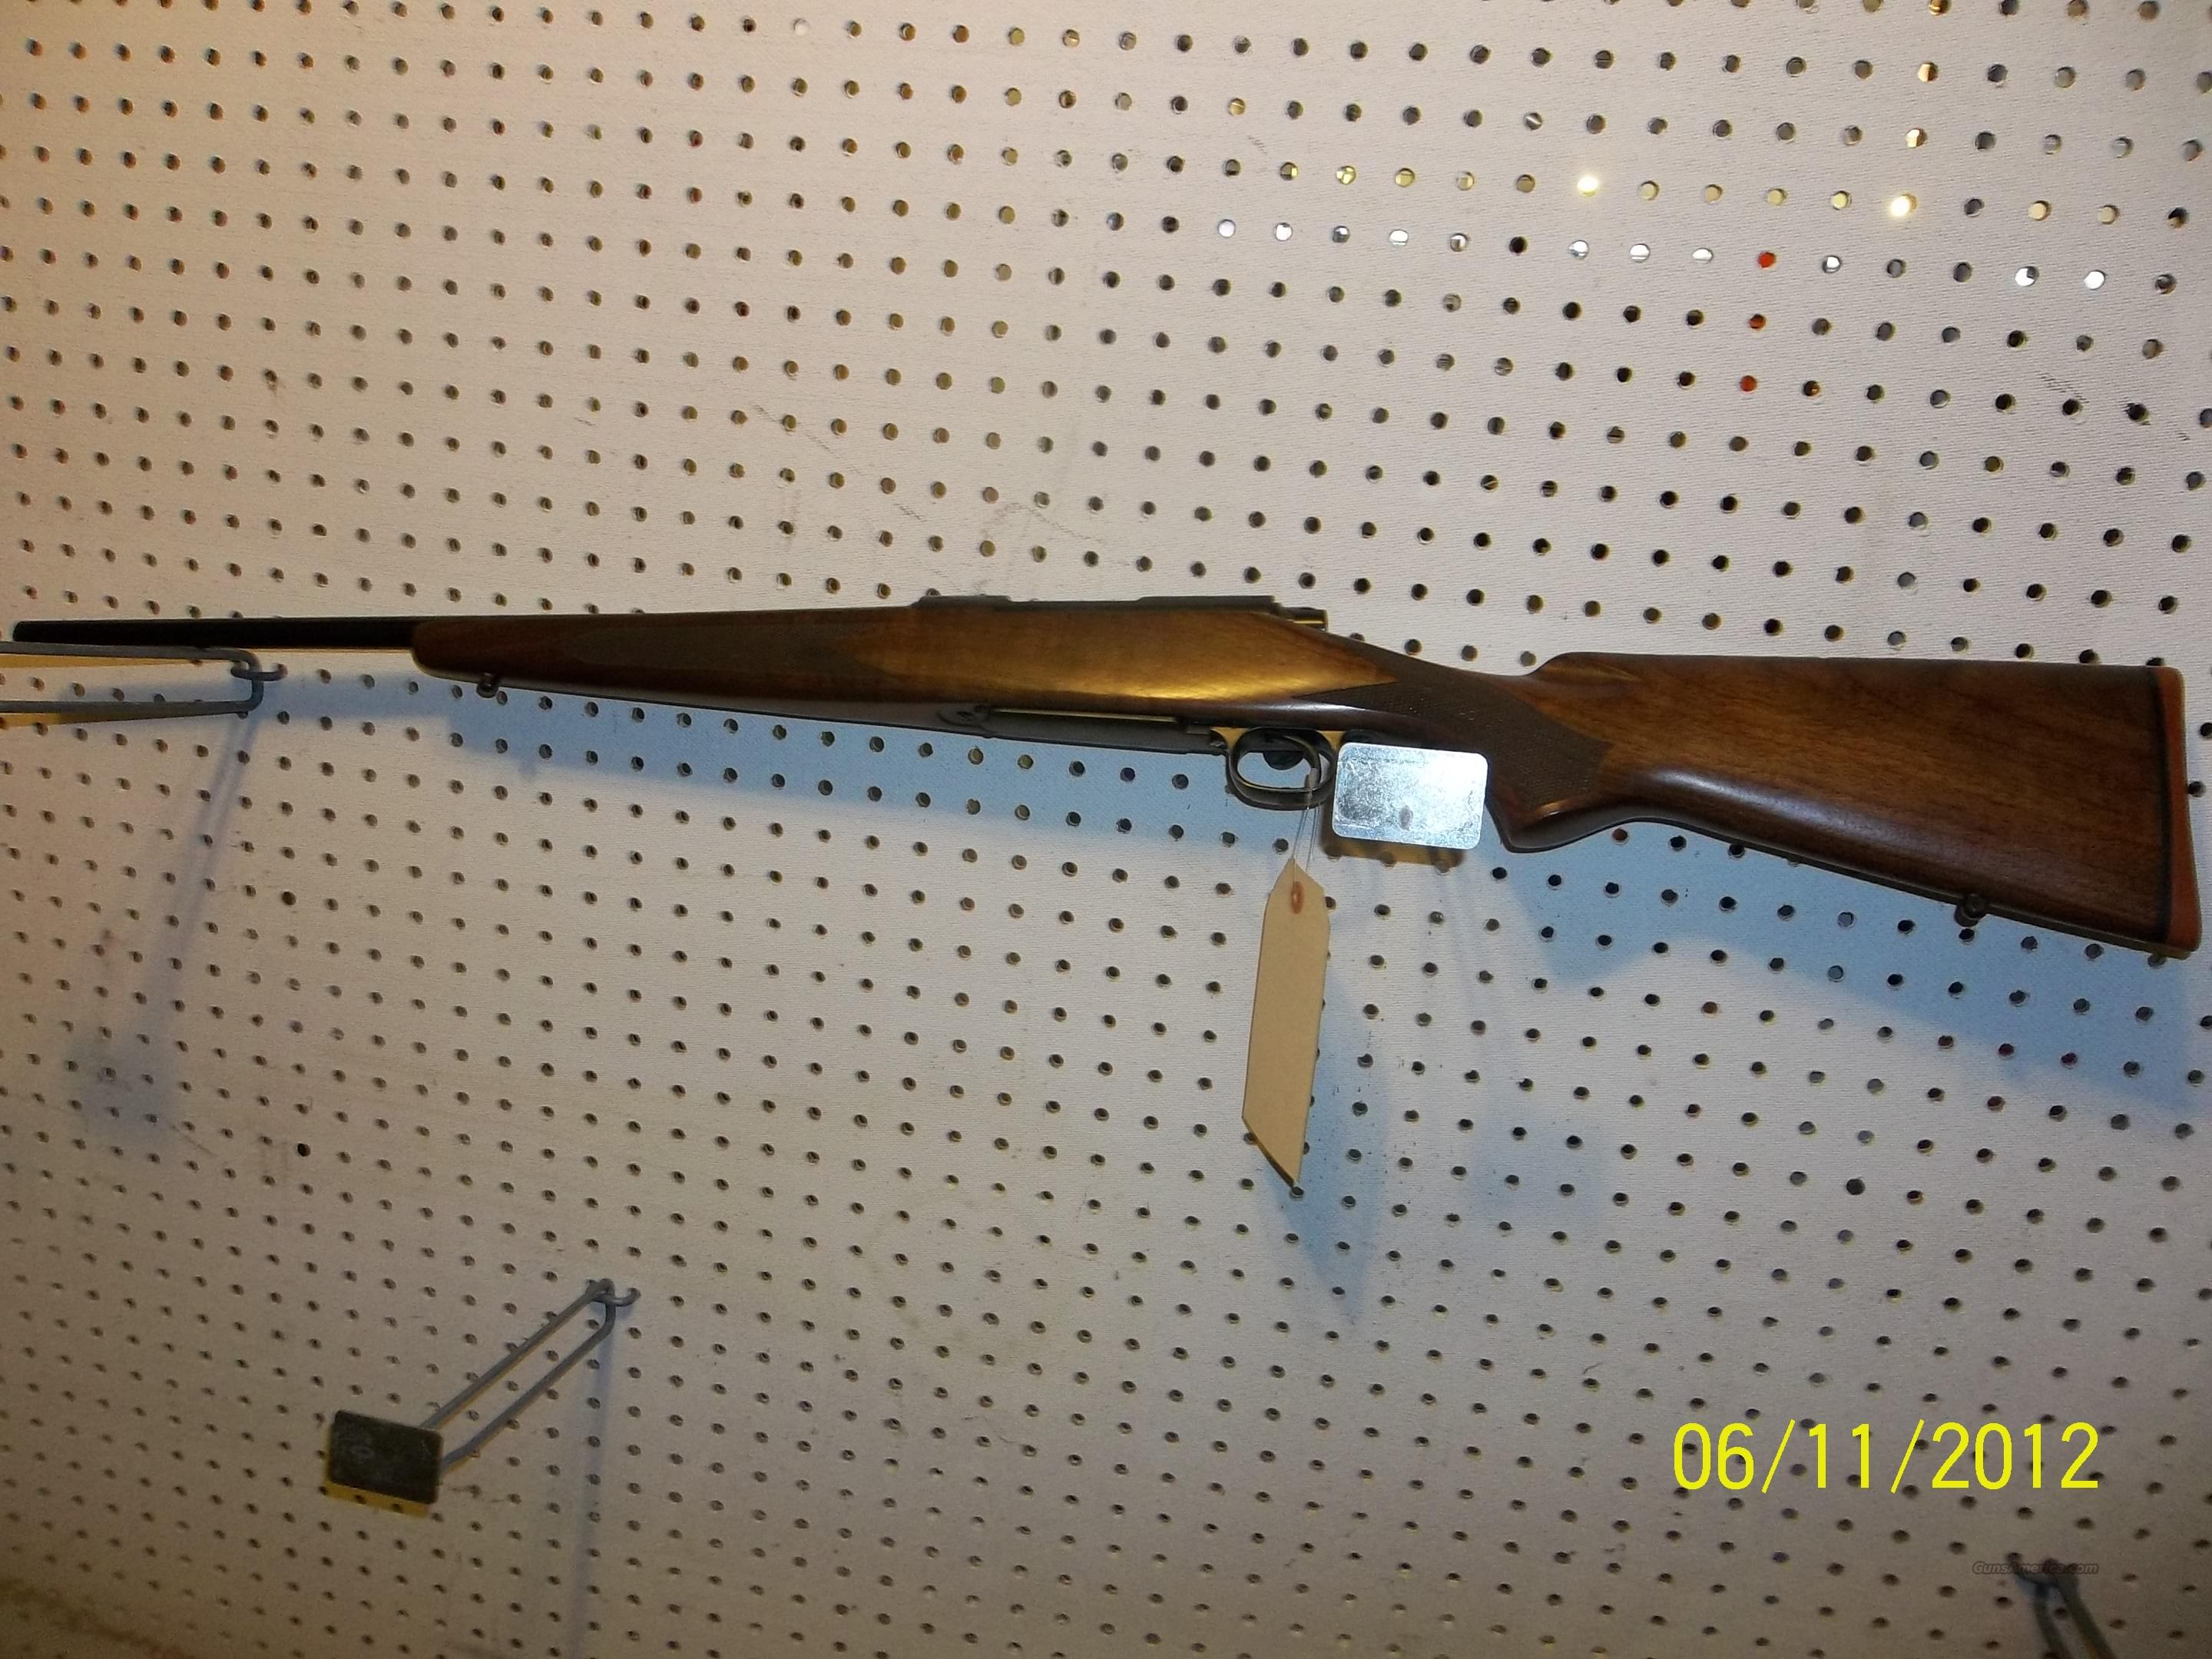 winchester 70 carbine 308 for sale or trade  Guns > Rifles > Winchester Rifles - Modern Bolt/Auto/Single > Model 70 > Post-64